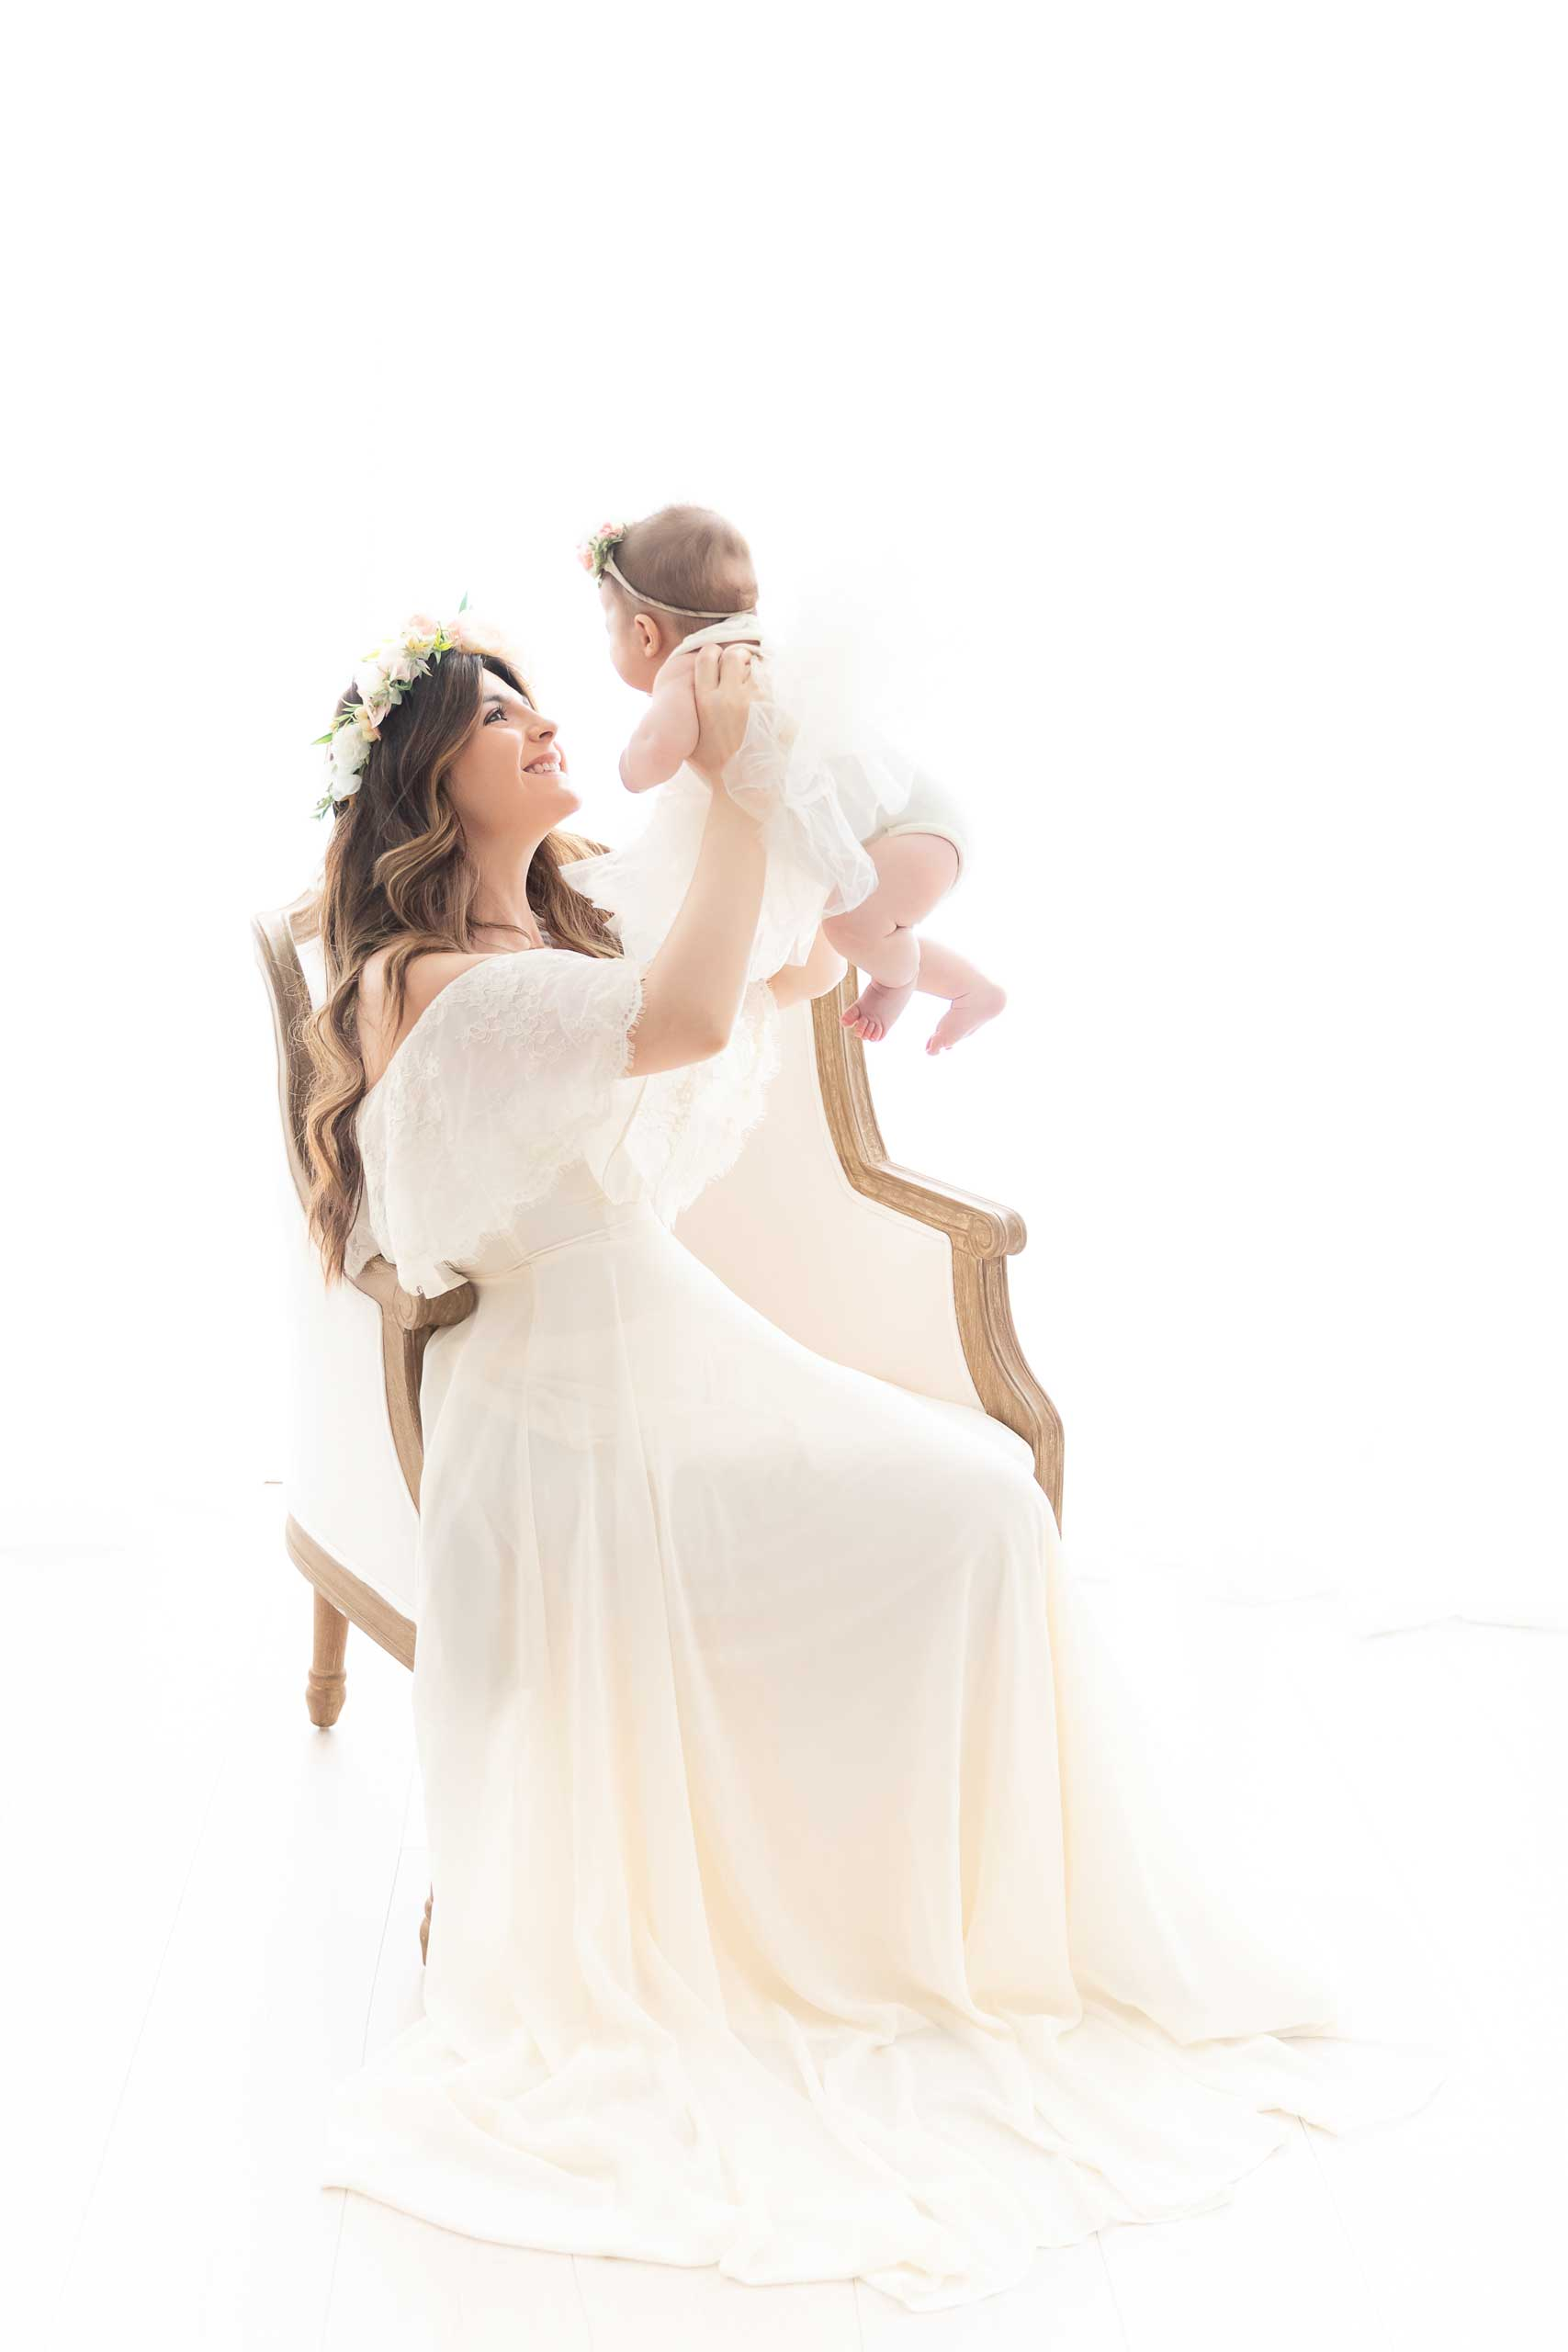 baby newborn and mommy photograph taken in Los Angeles by Ramina Magid Photography